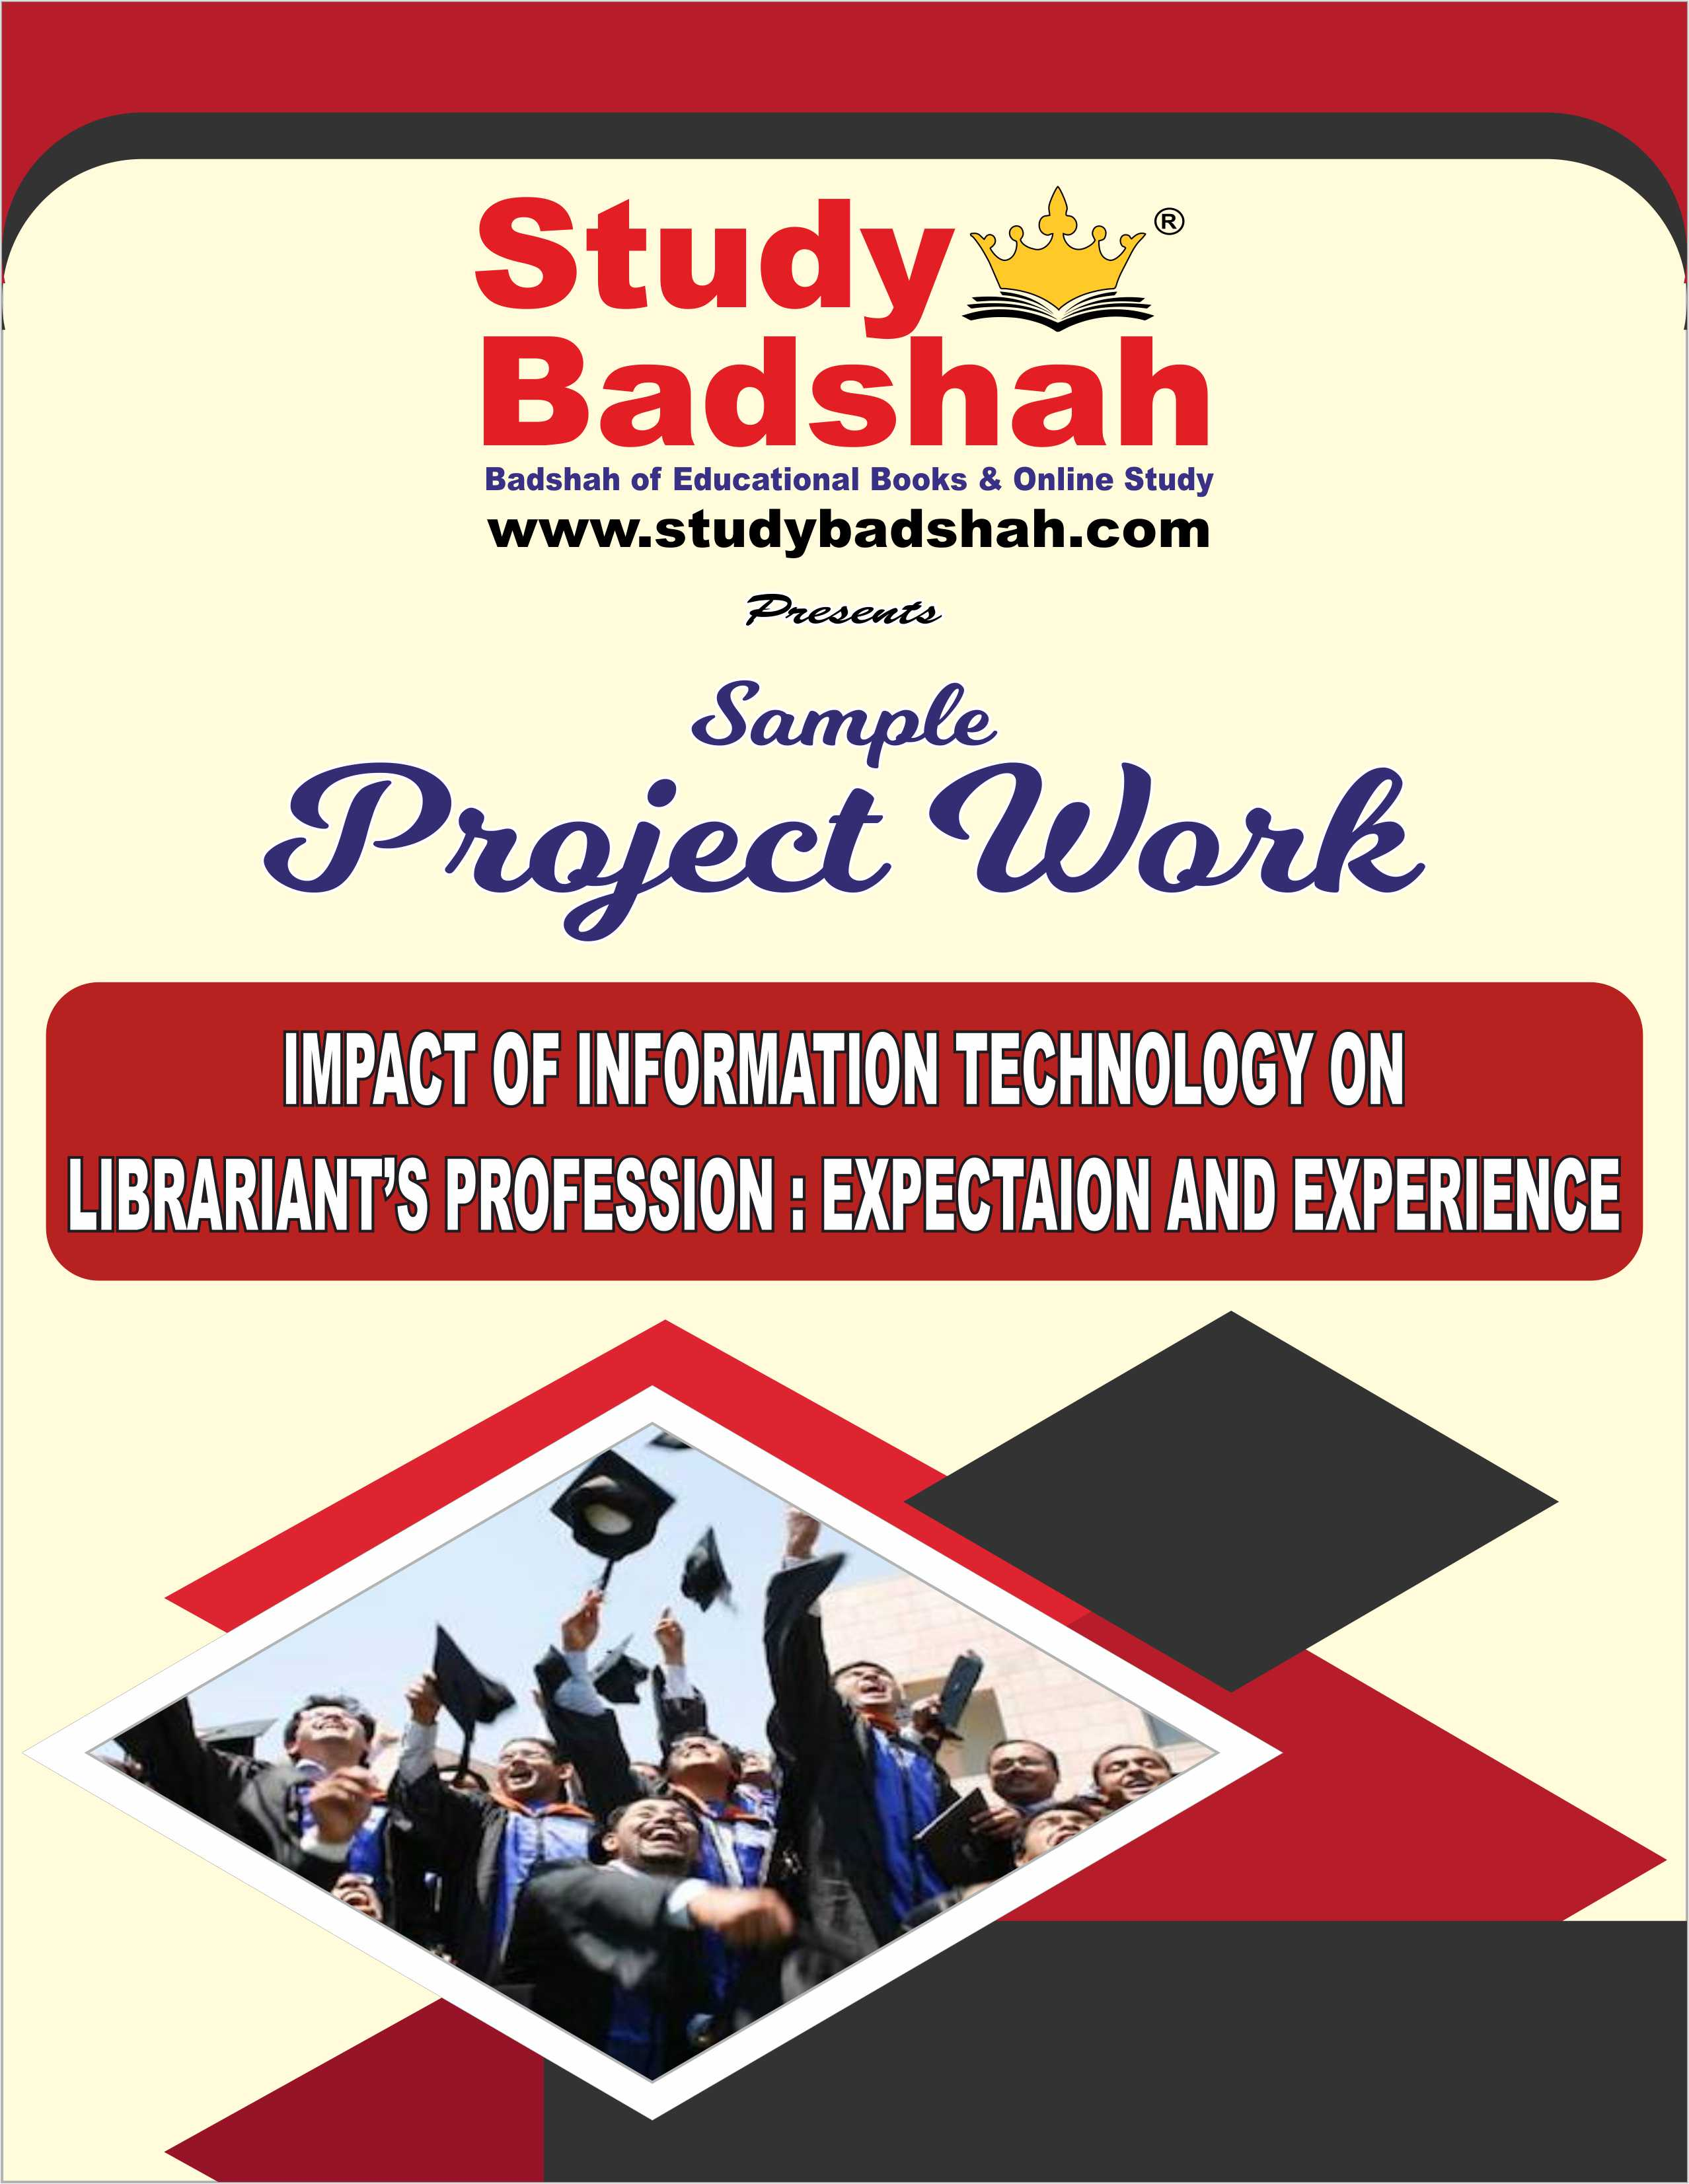 Impact of Information Technology on Librariants Profession Expectaion and Experience